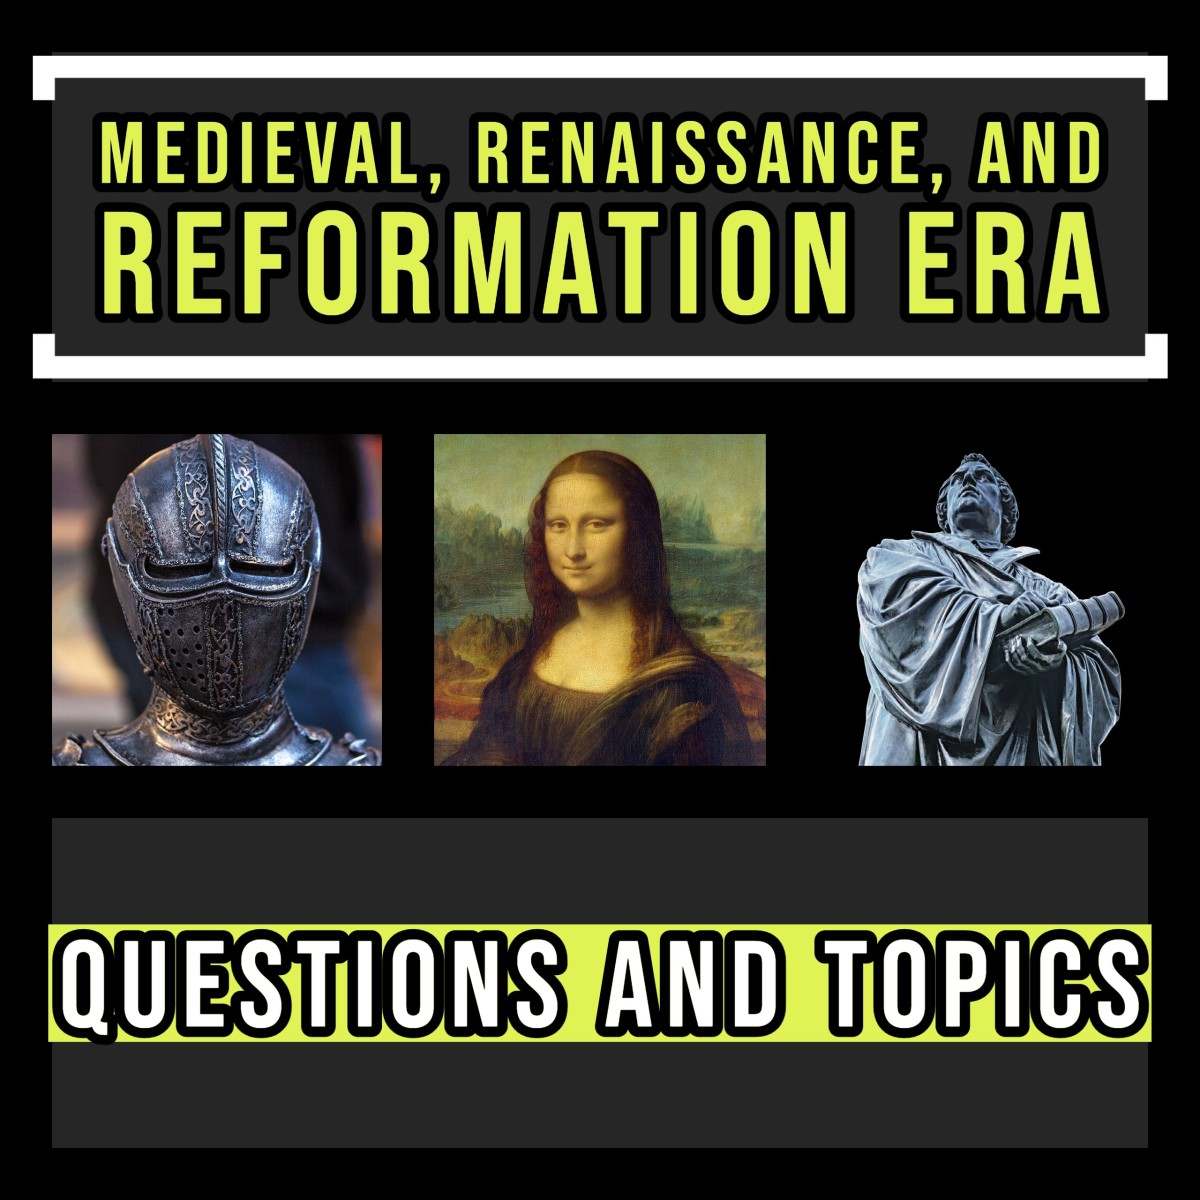 Medieval, Renaissance, and Reformation topics and questions.